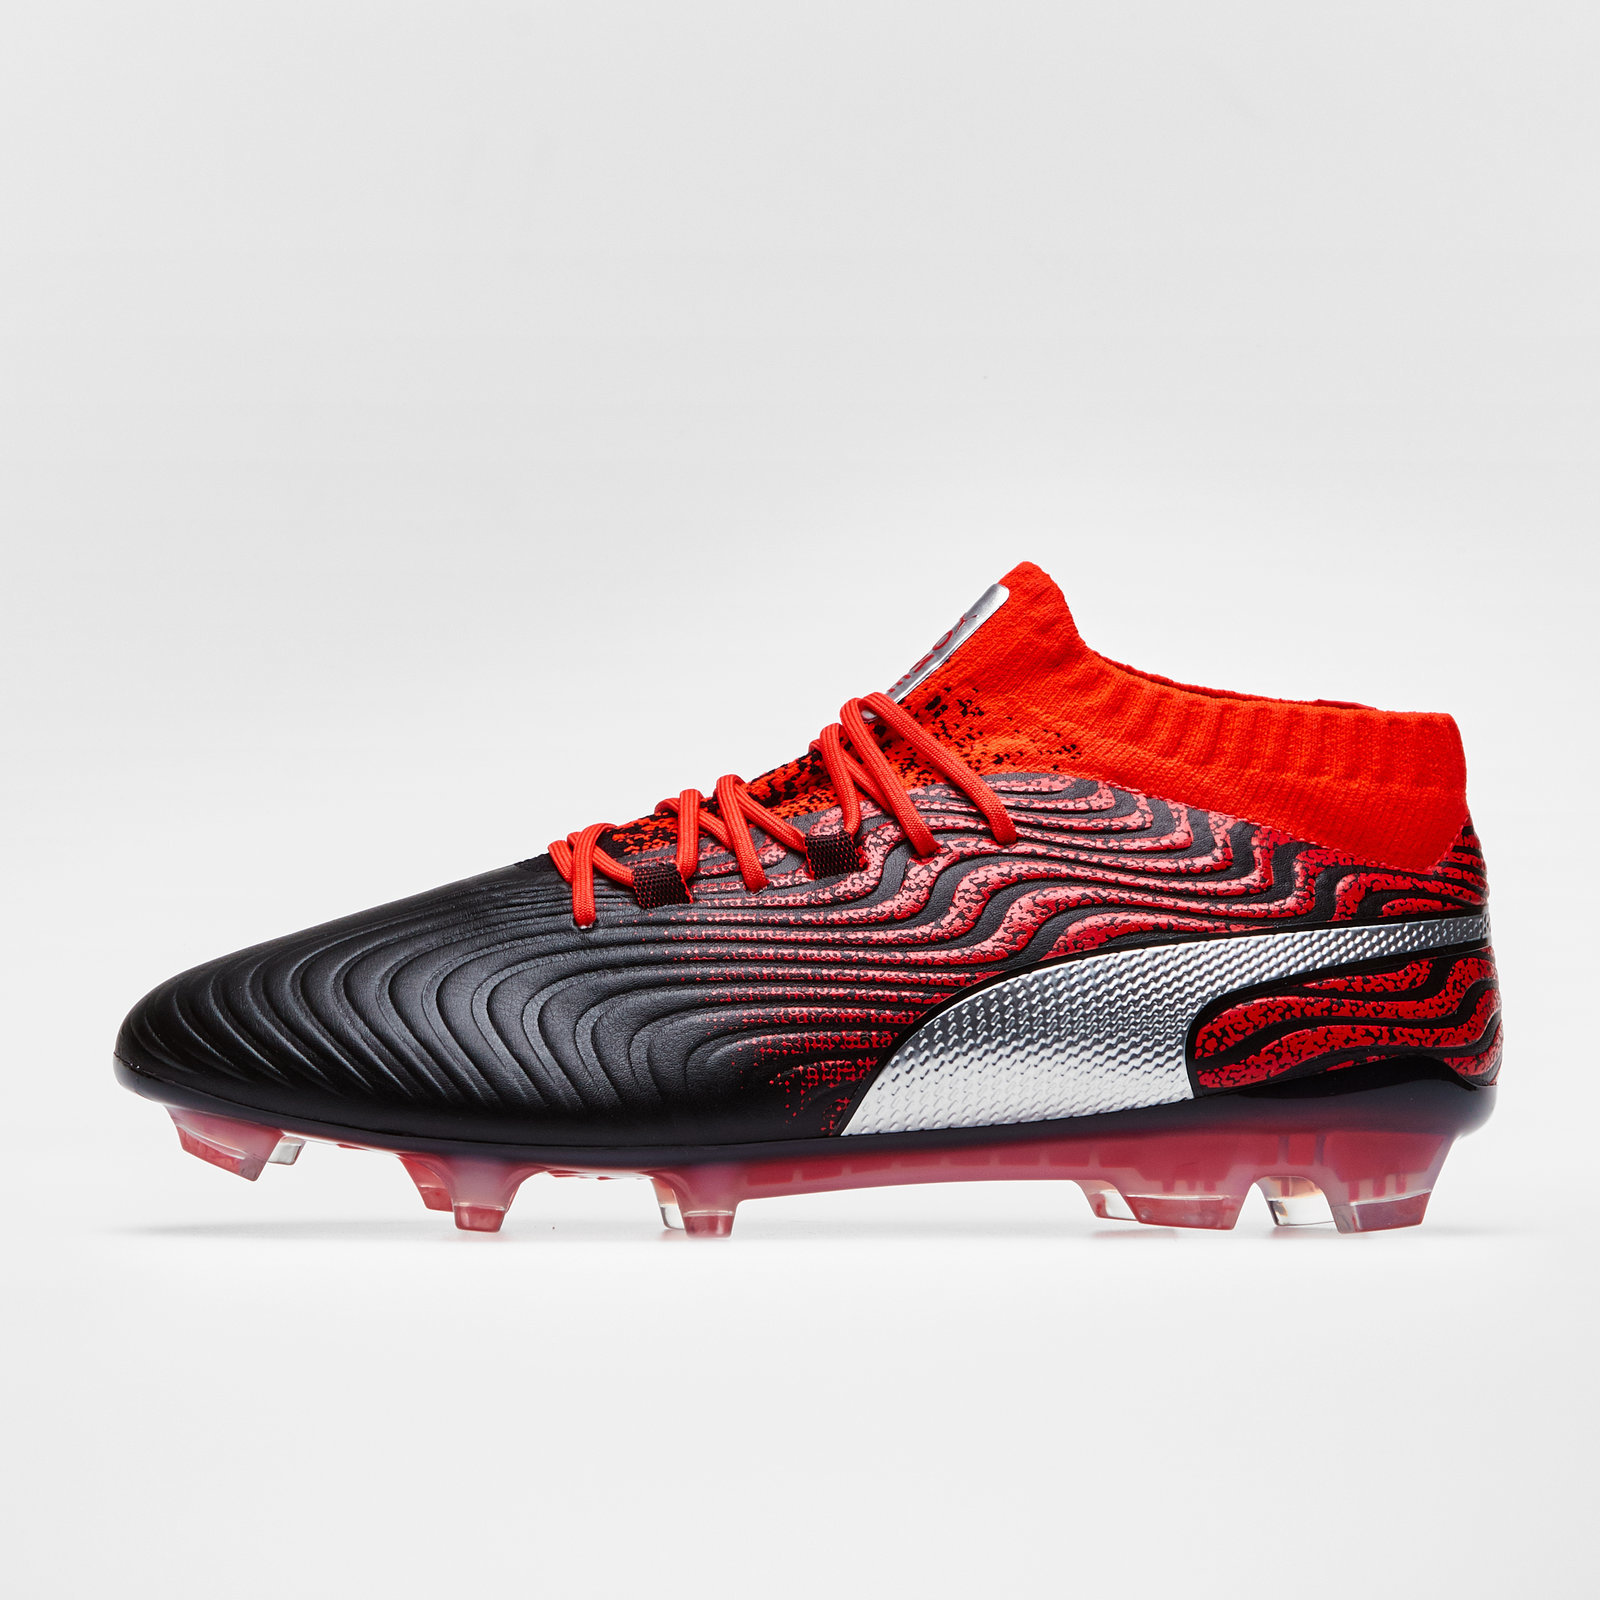 Mens Puma One 18.1 Syn Firm Ground Football Boots Trainers Sports ... dde522046